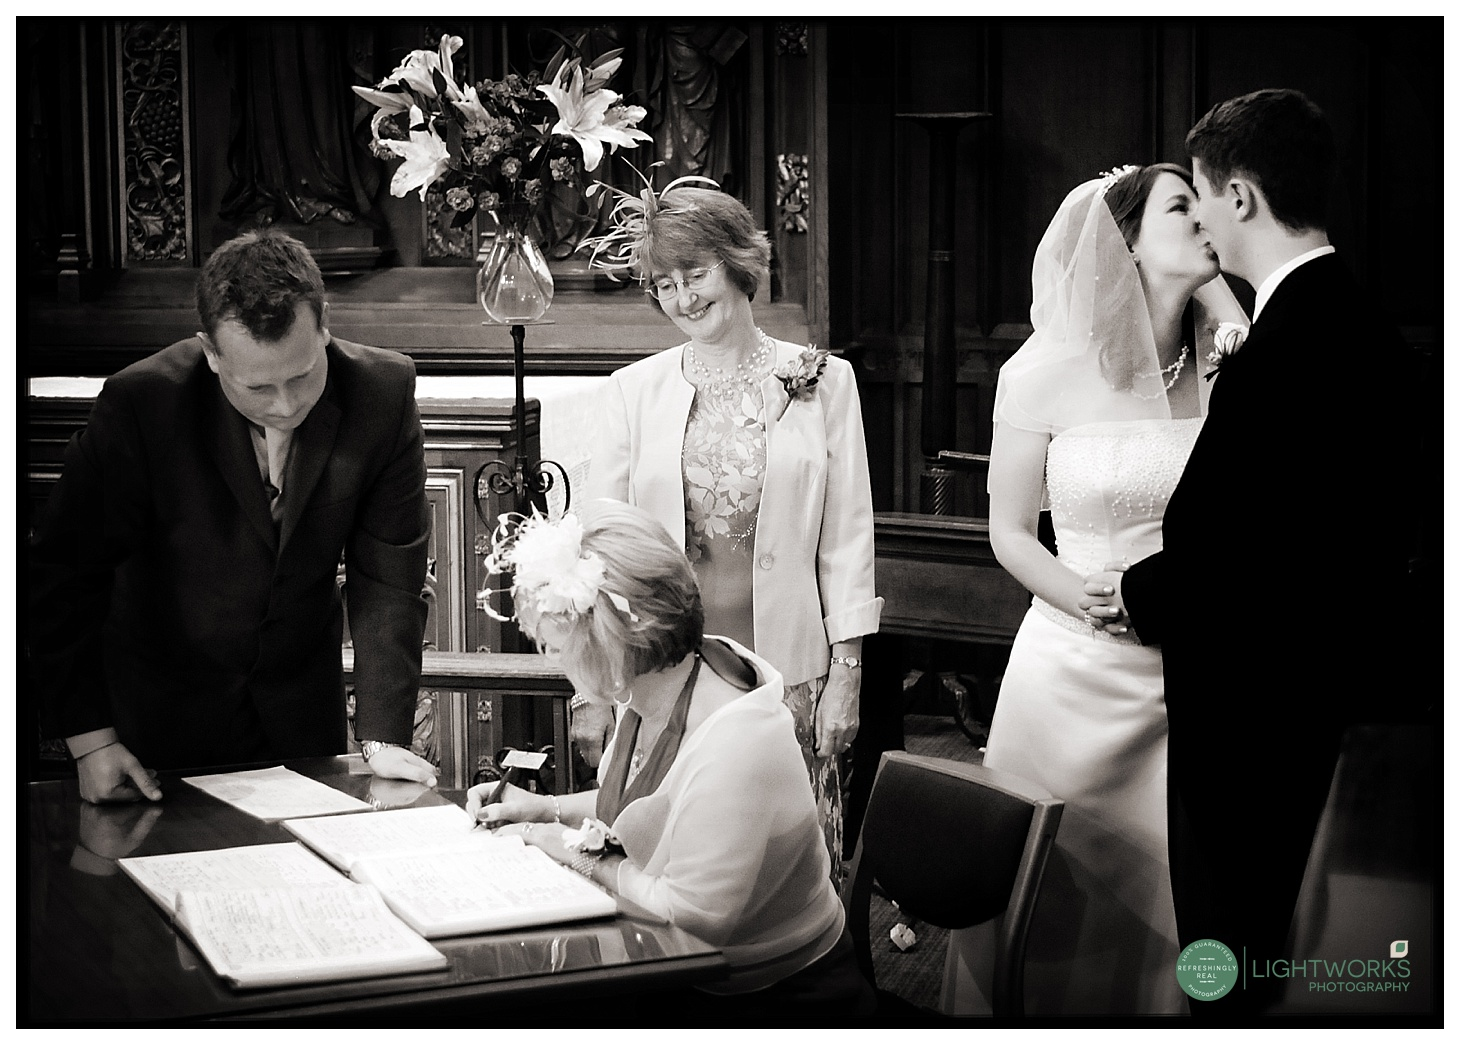 Register signing at a college wedding